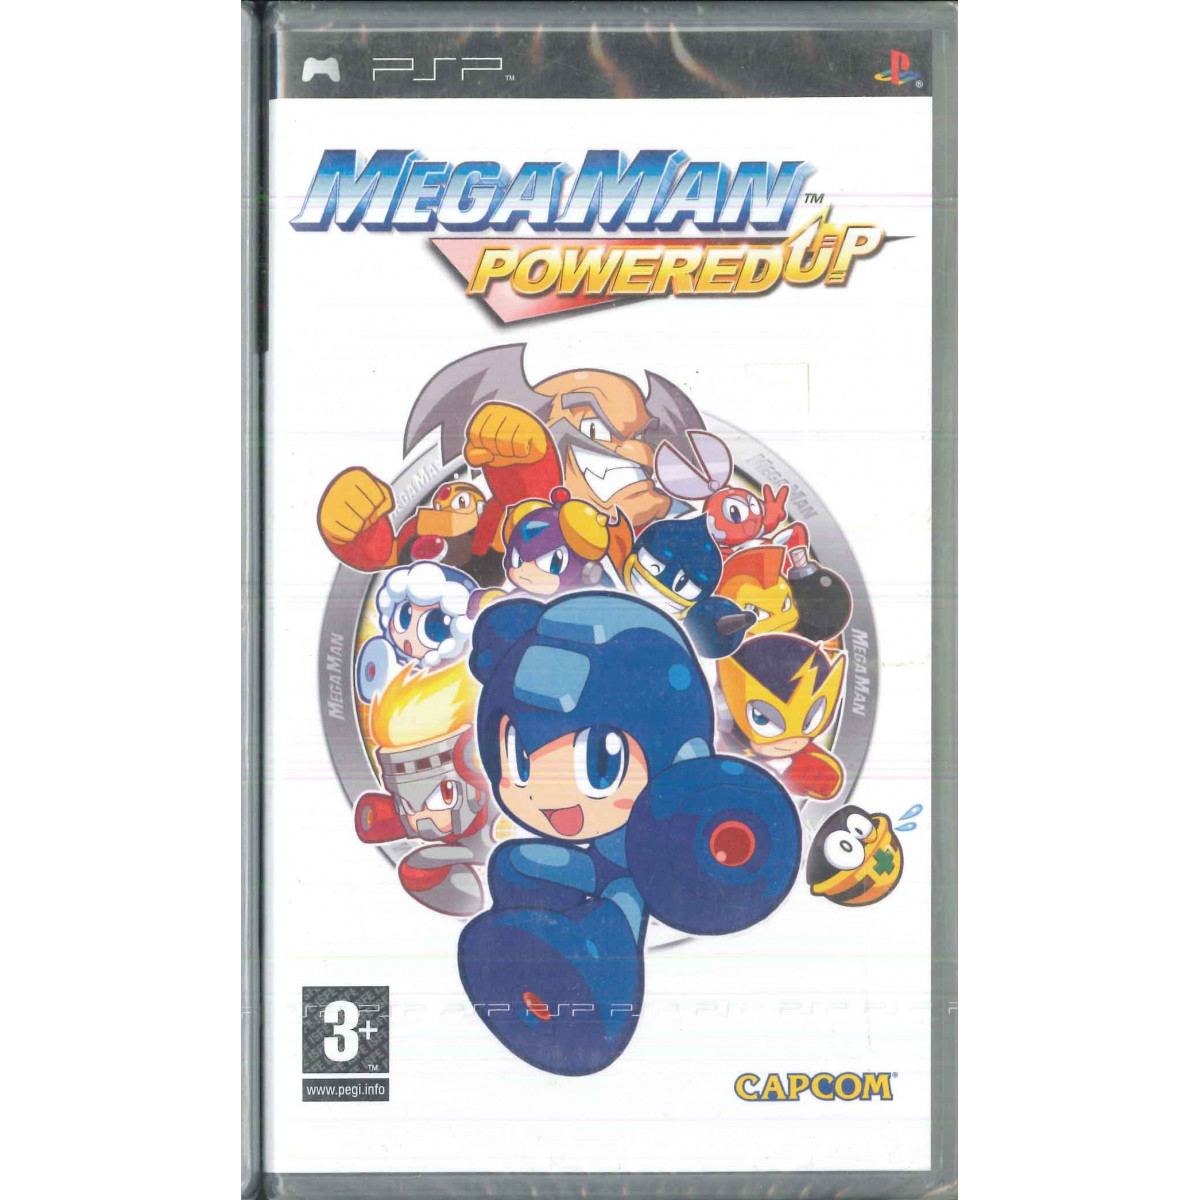 Megaman Powered Up Videogioco PSP Capcom Sigillato 5055060910320